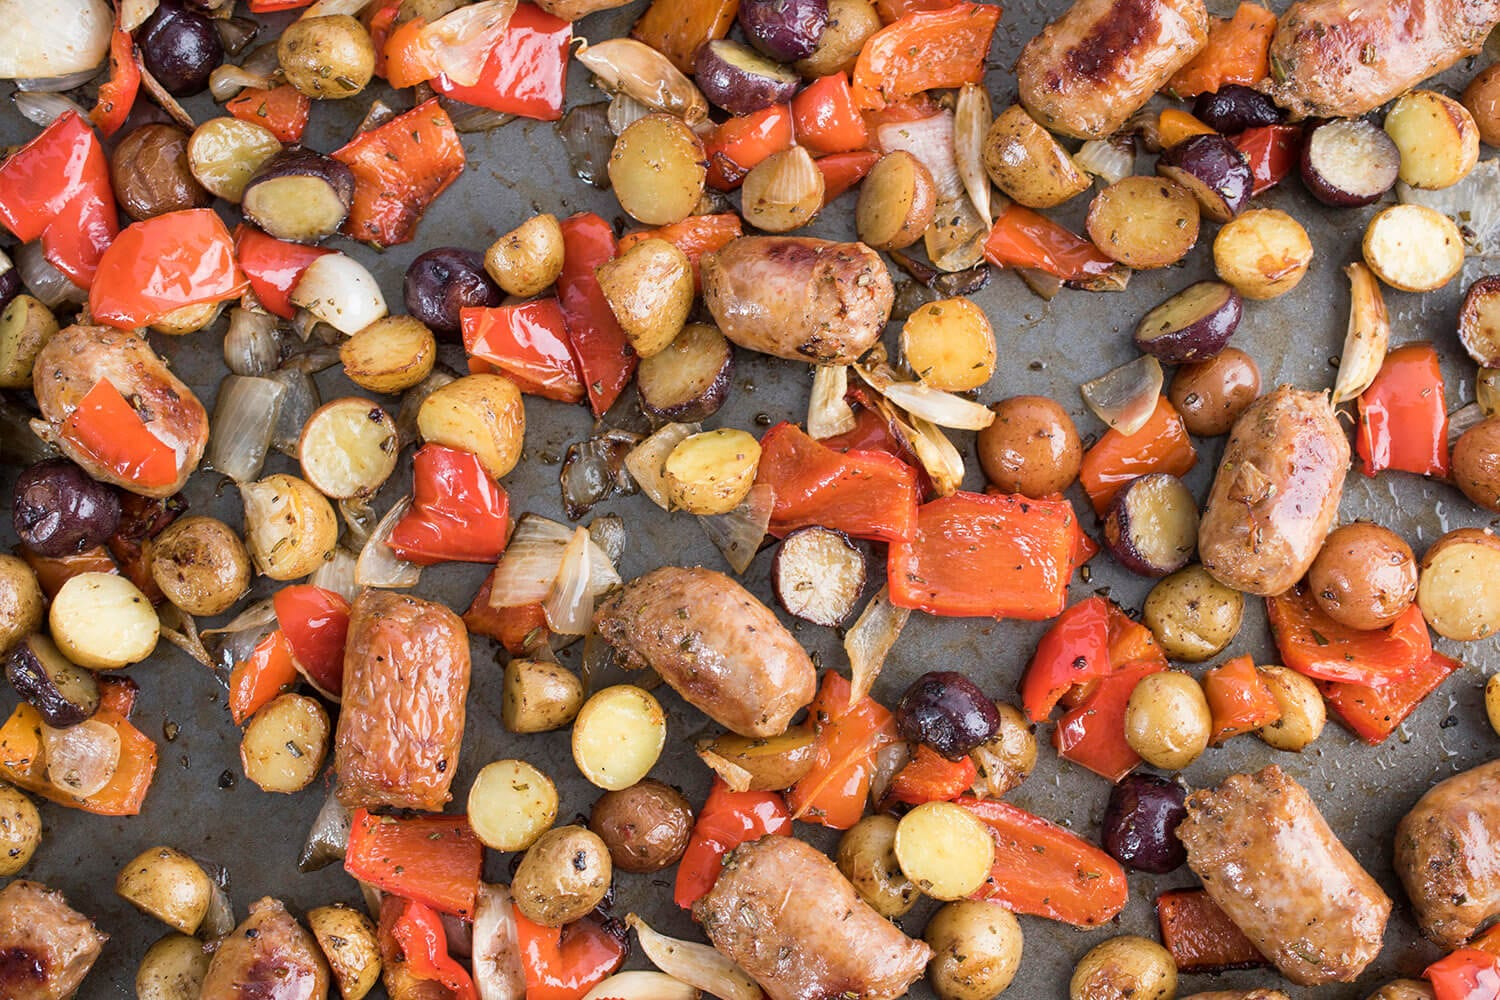 Sheet Pan Sausage, Peppers and Potatoes